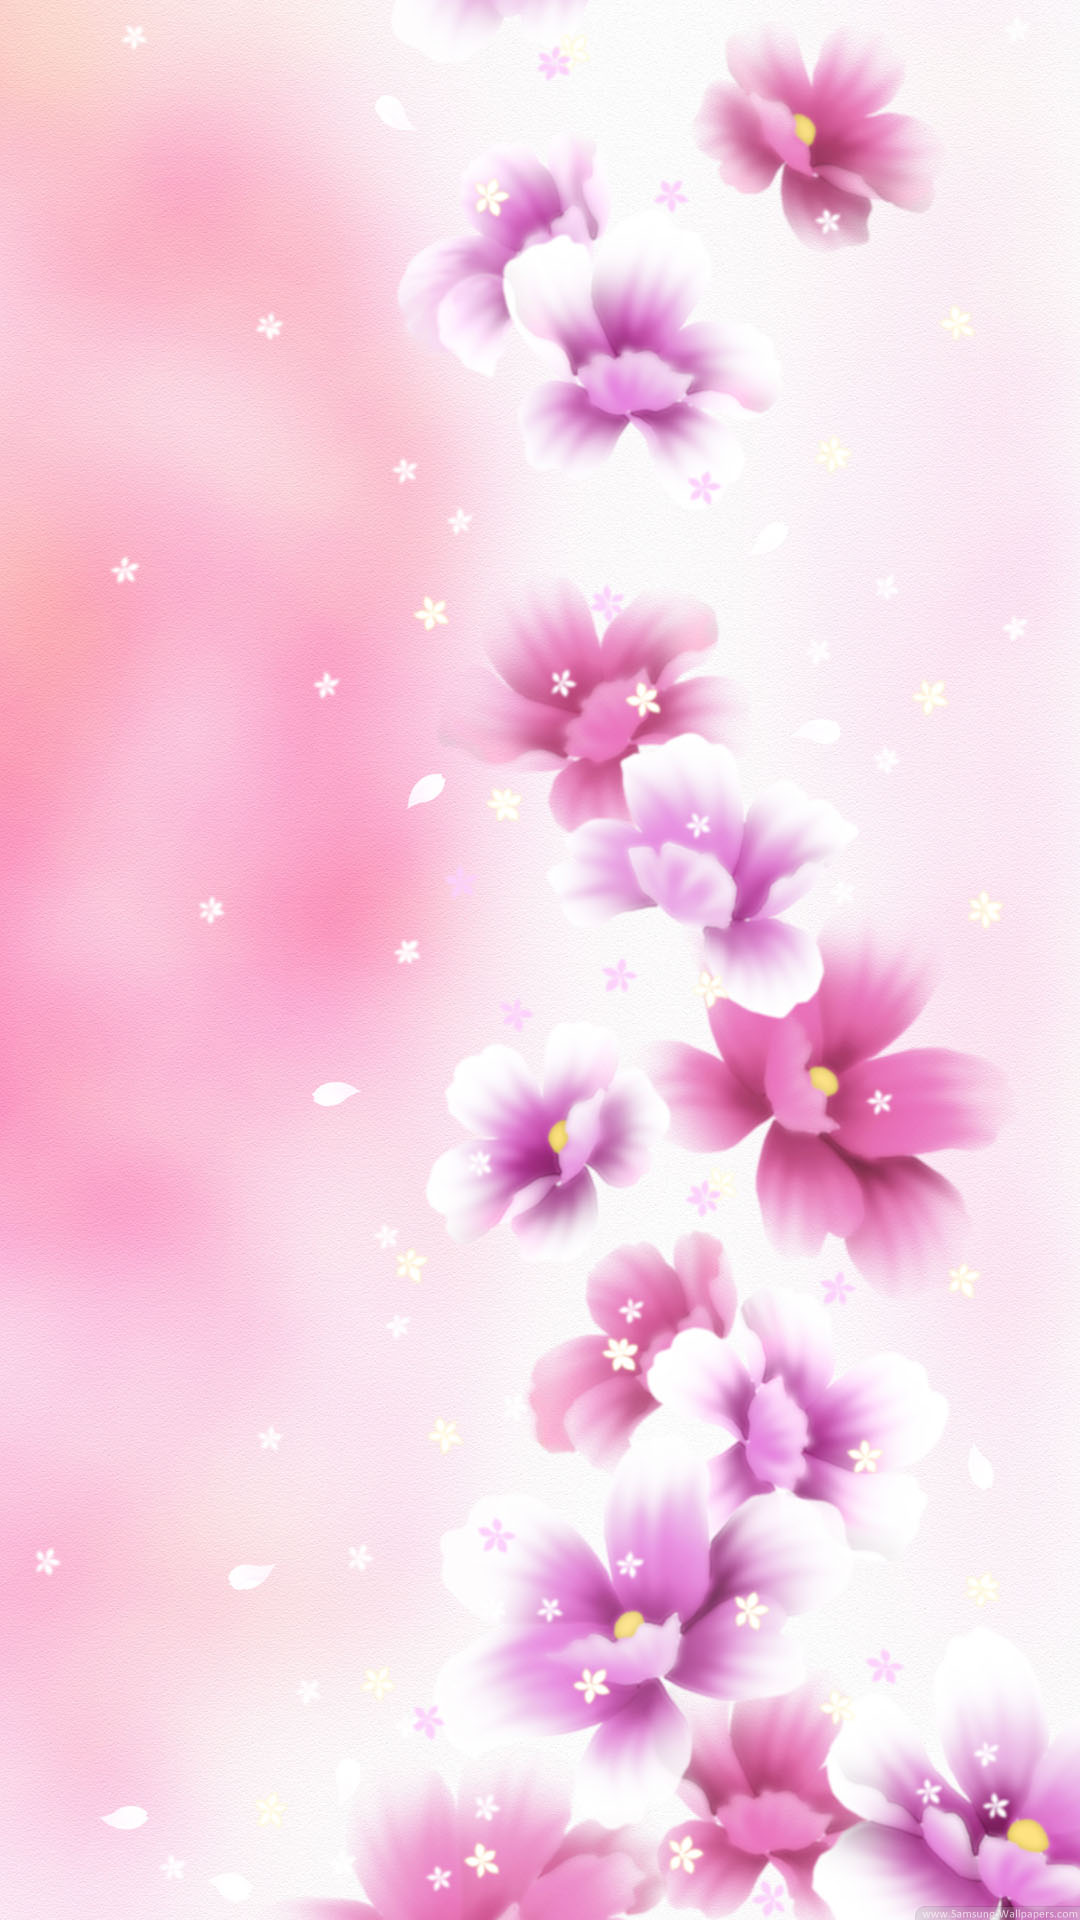 Cute Pink Smartphone Wallpaper Iphone Wallpaper